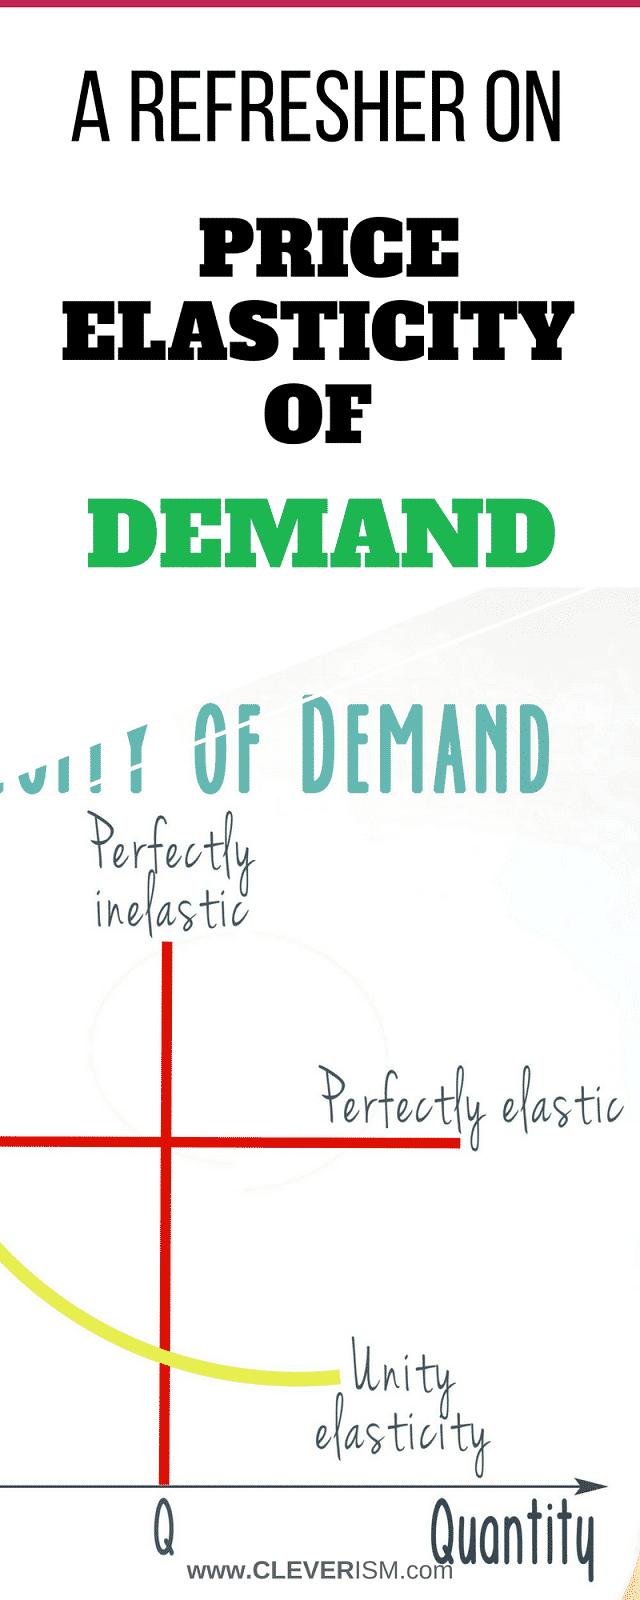 a refresher on price elasticity of demand